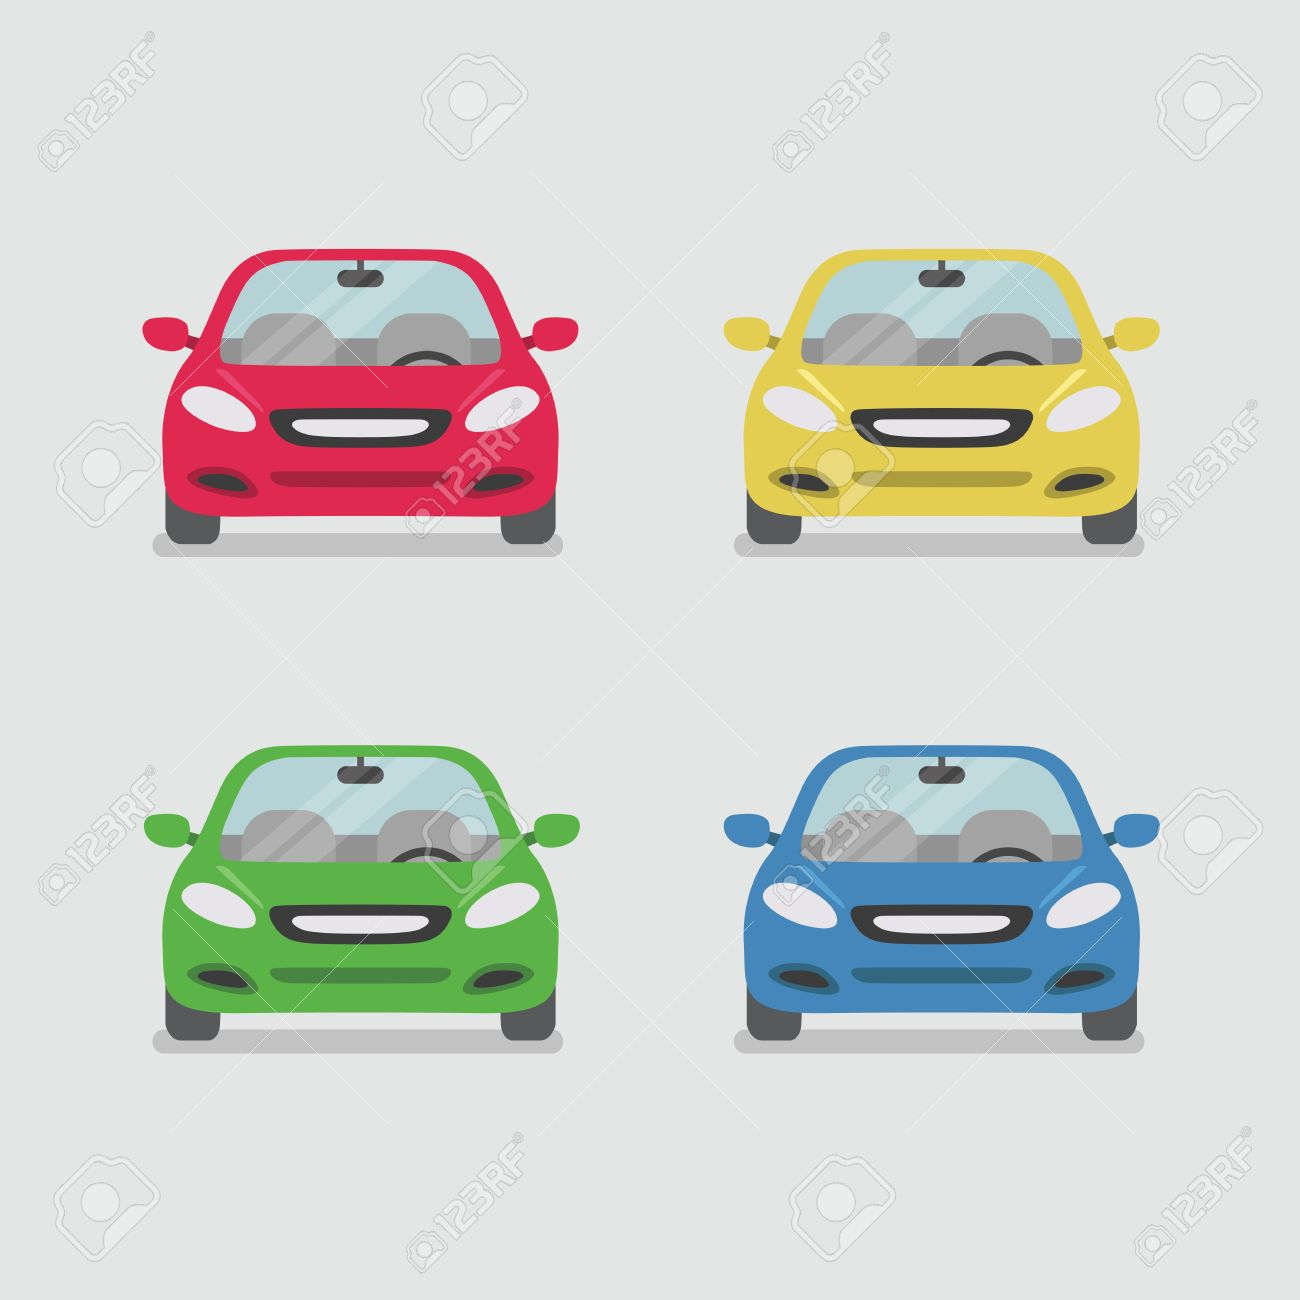 Car front view vector - 57976153